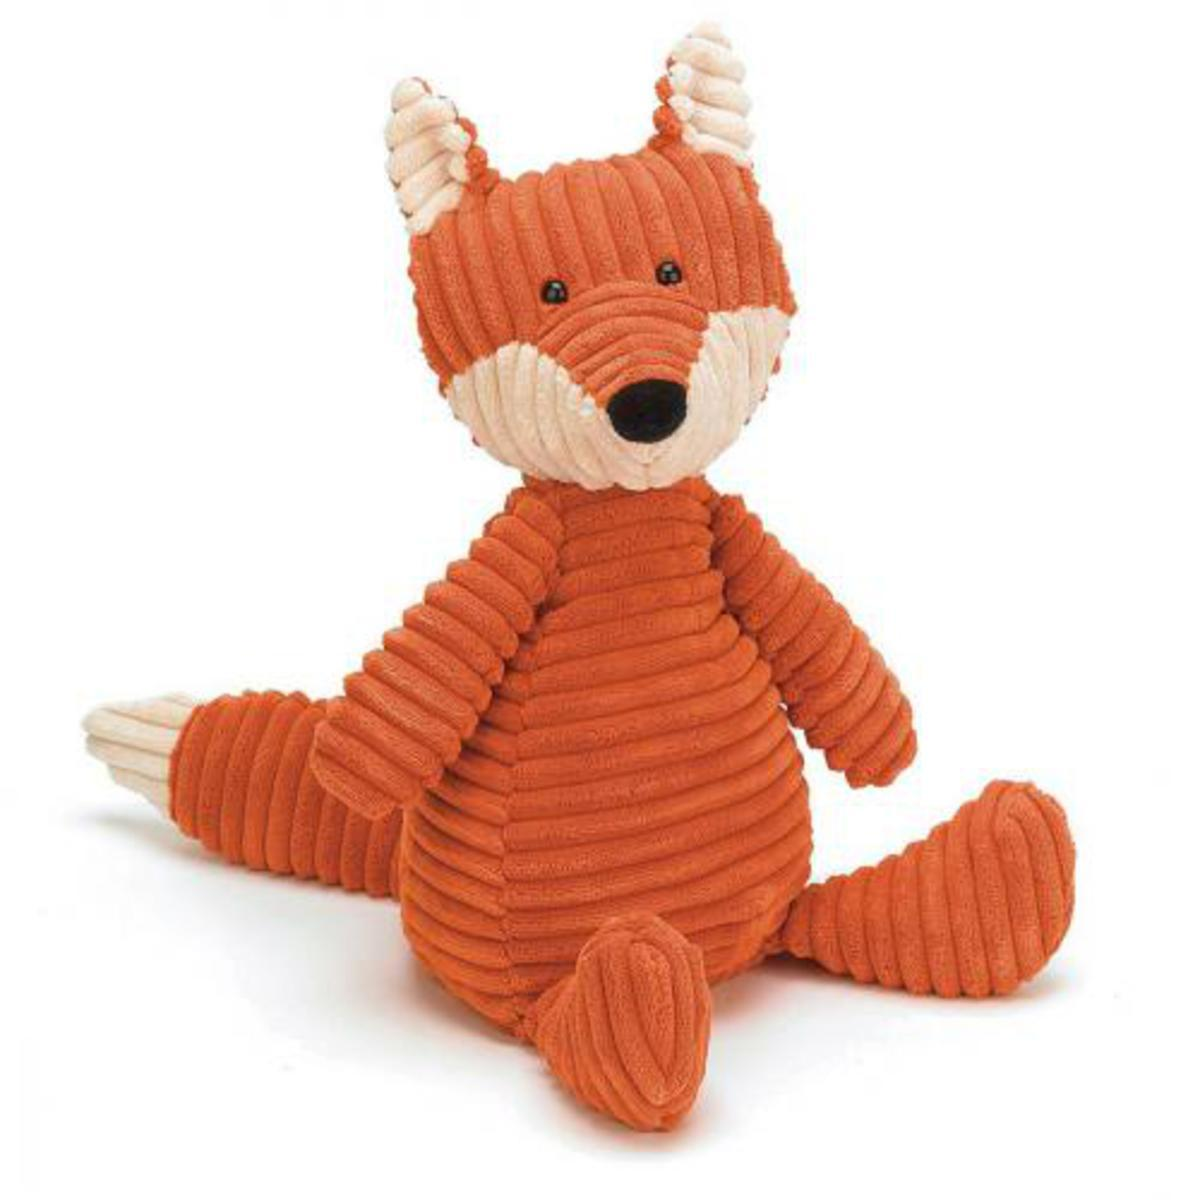 Peluche Cordy Roy Fox - Small Cordy Roy Fox - Small